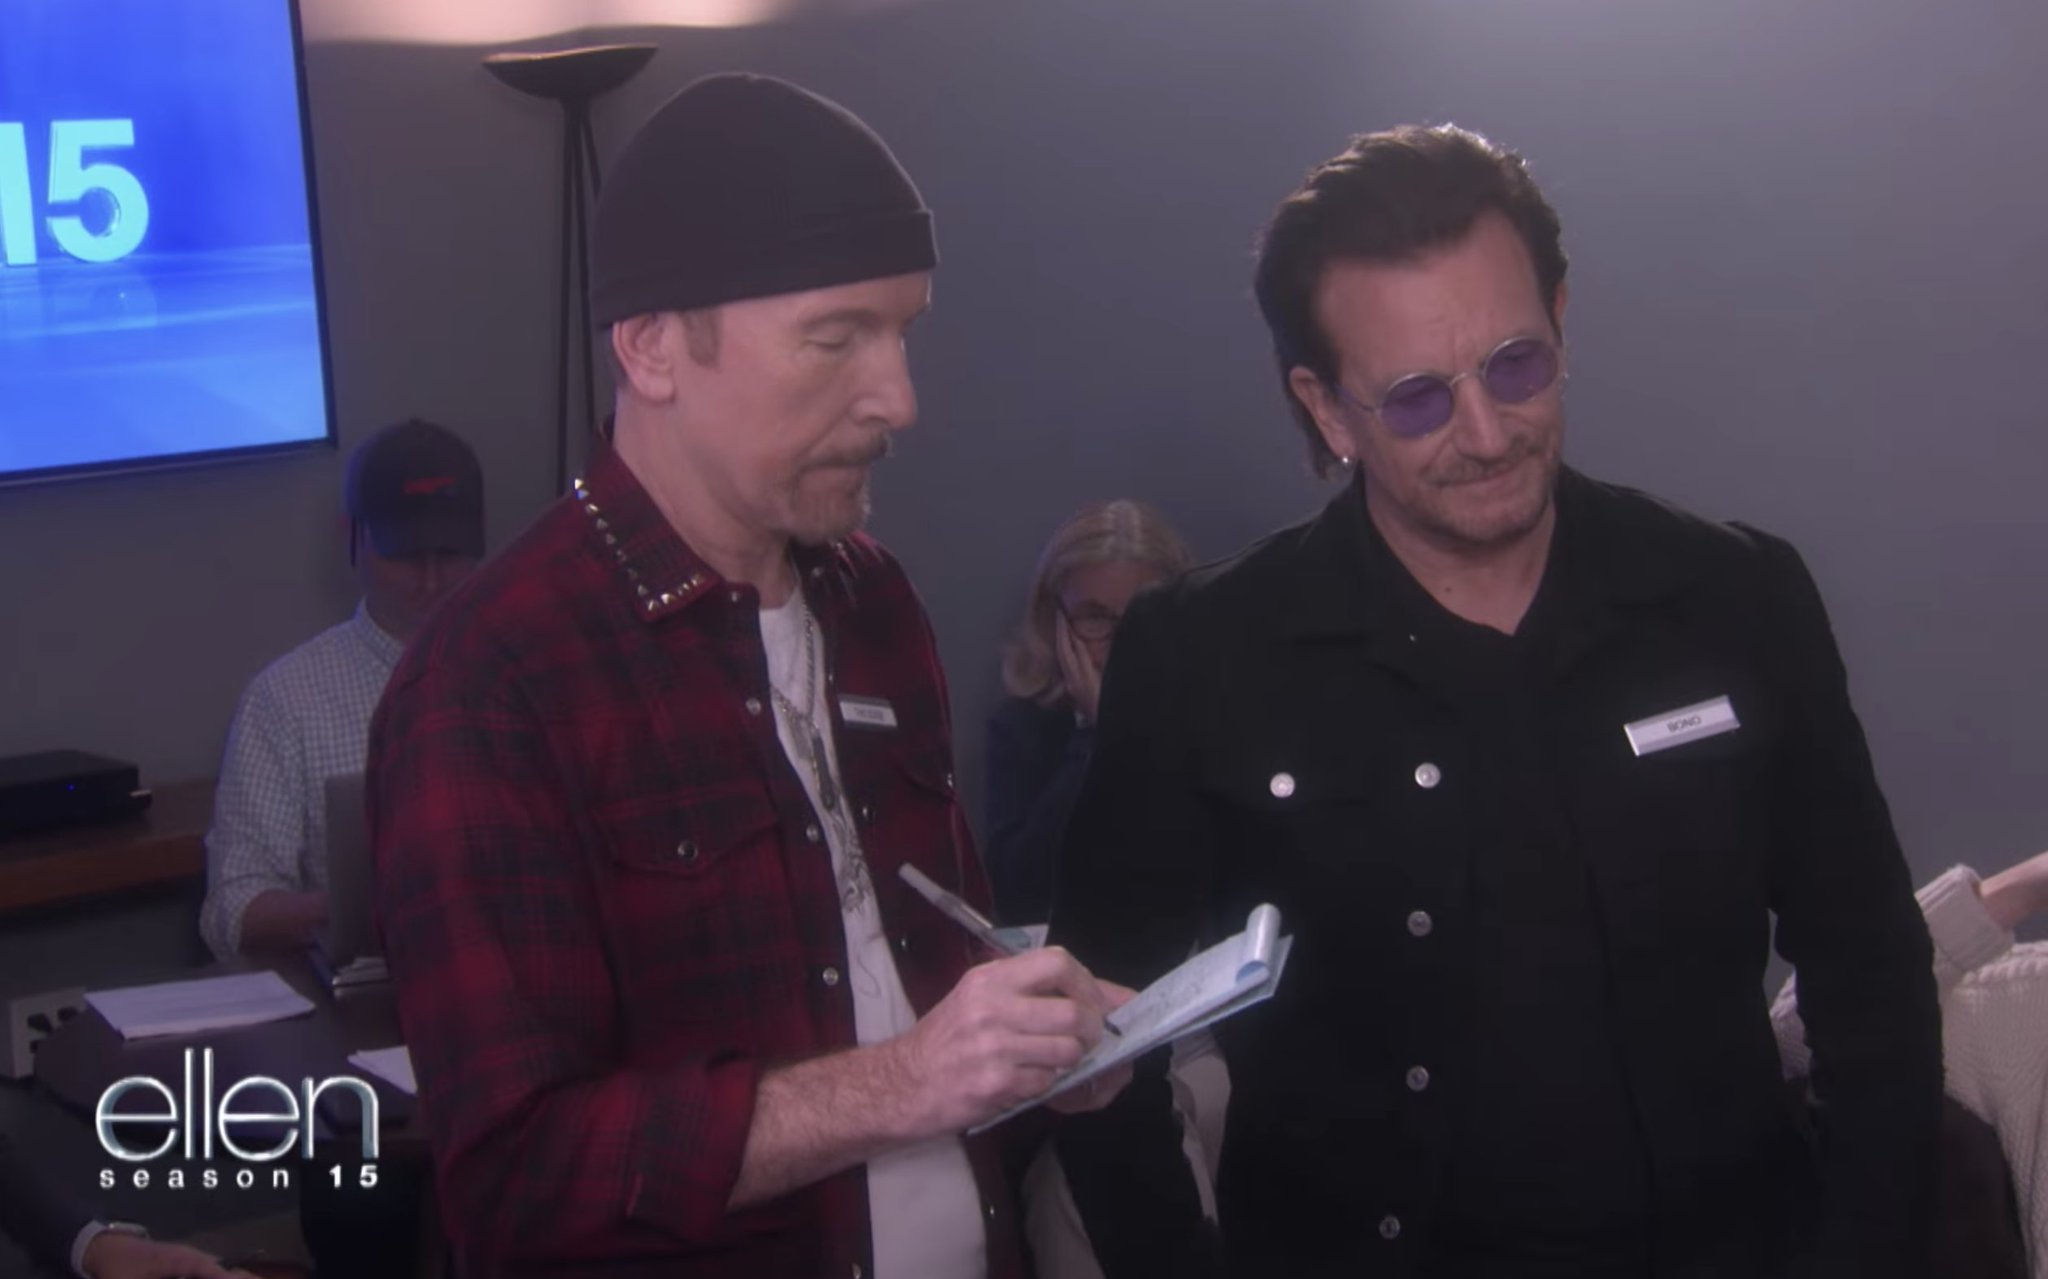 Bono and the Edge were Ellen's assistants today https://t.co/vK737fQGRU https://t.co/2Me4gWvM8E